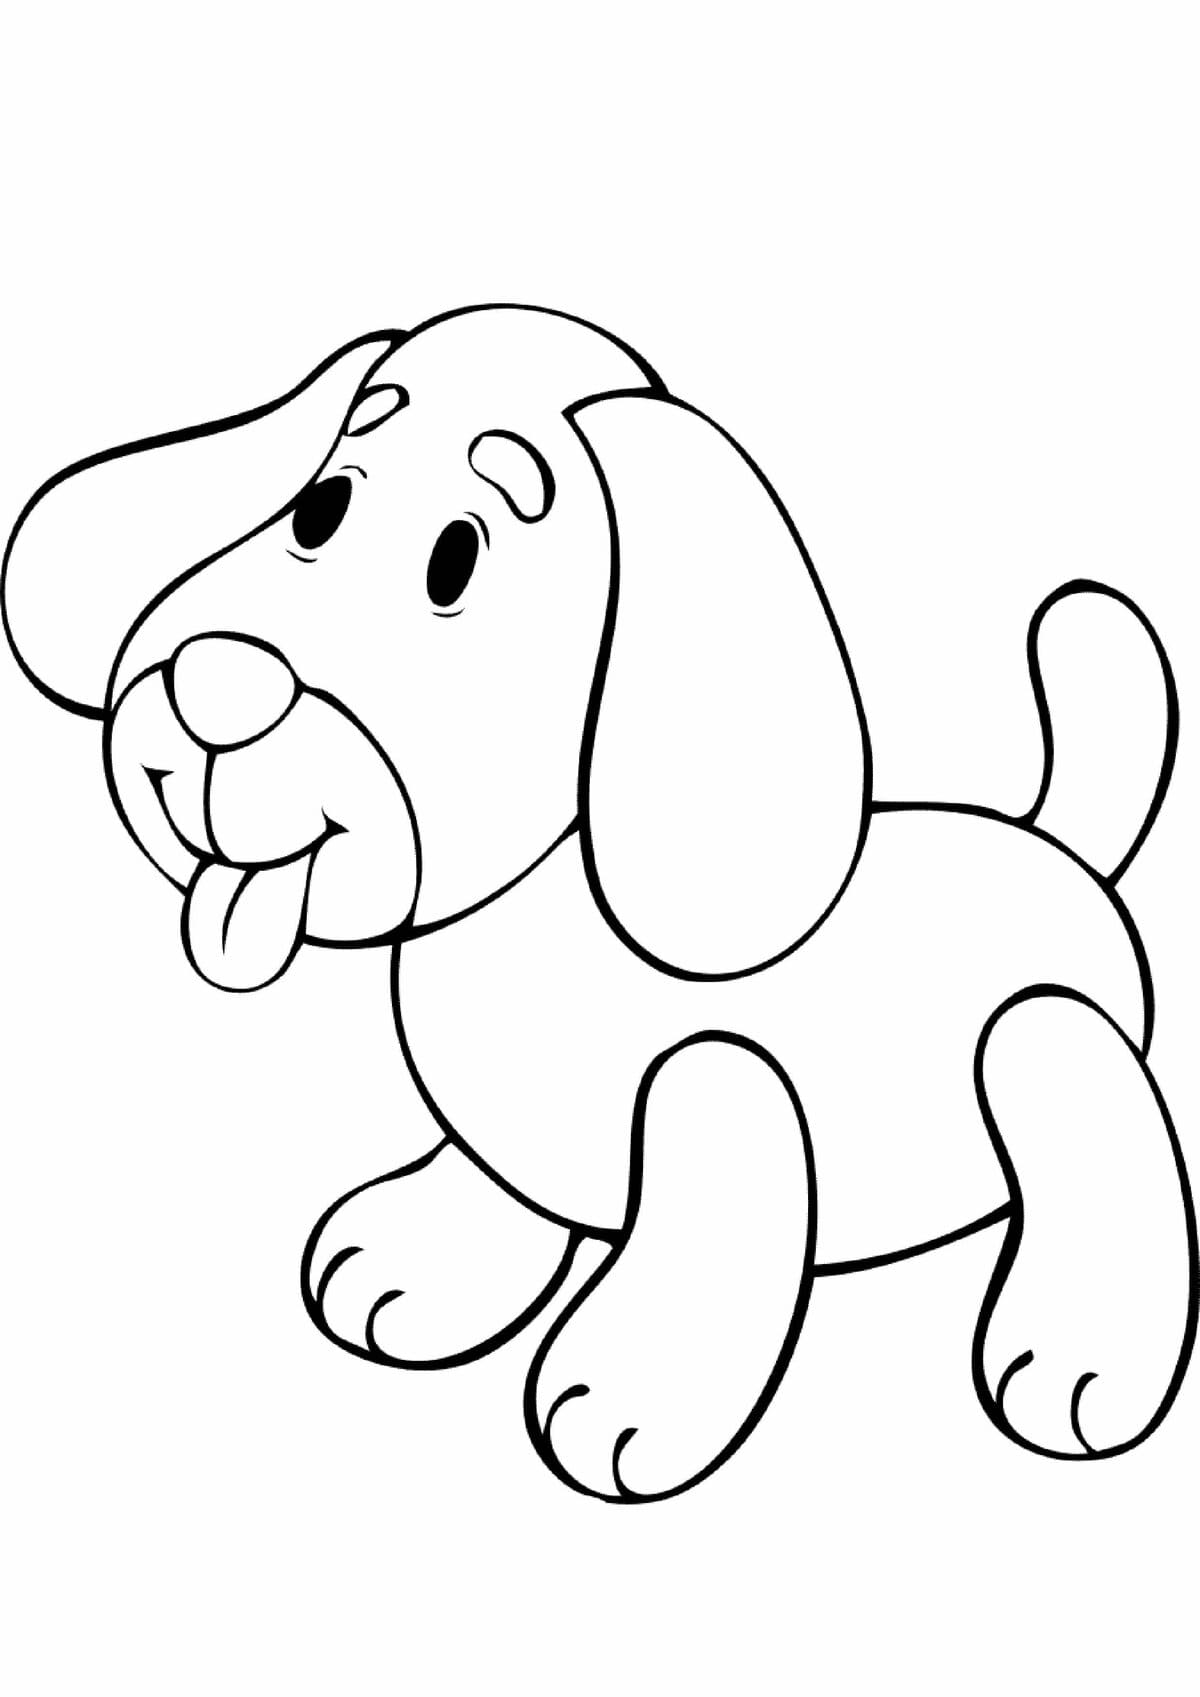 Coloring Pages for 5- to 5-Year-Old Kids. Download Them or Print